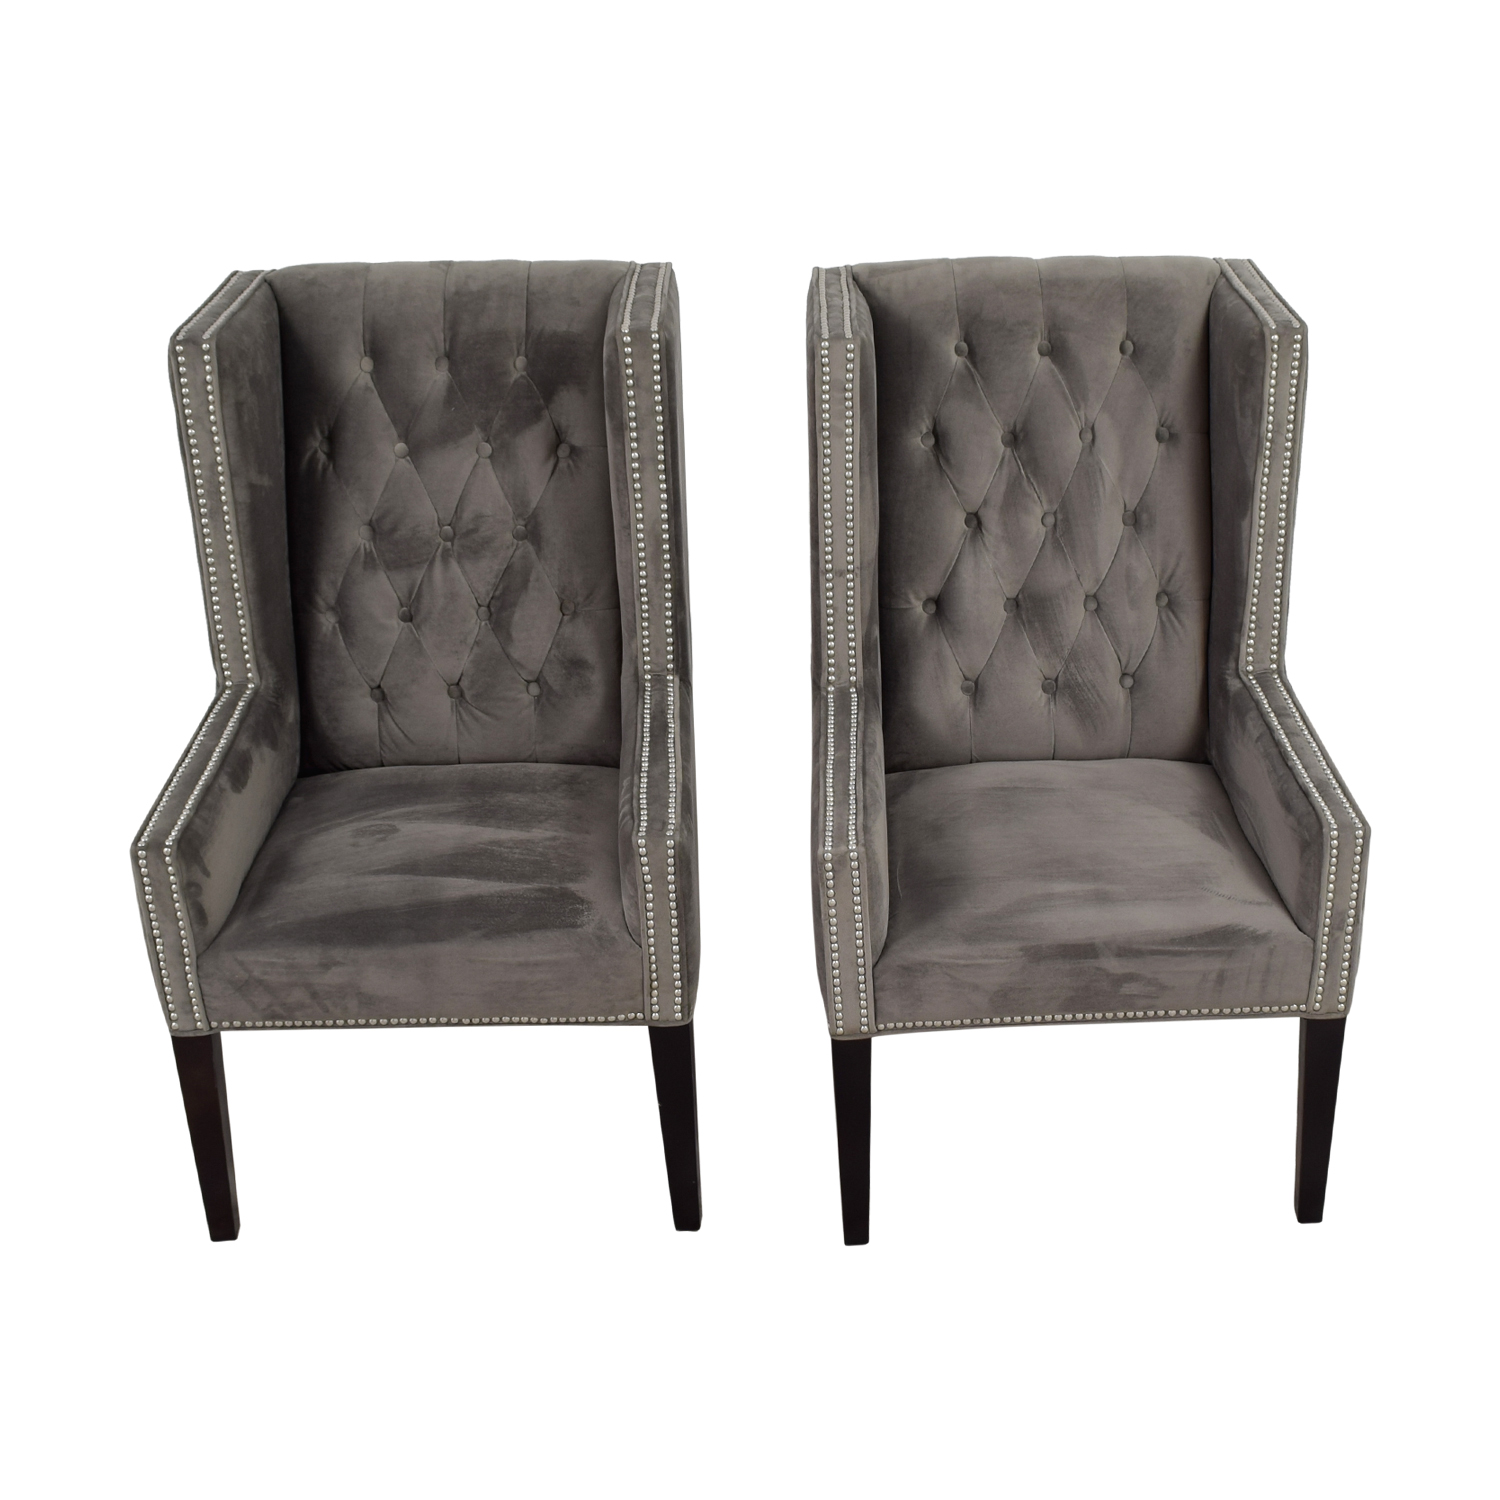 Z Gallerie Z Gallerie Logan Grey Tufted Wing Chairs dimensions